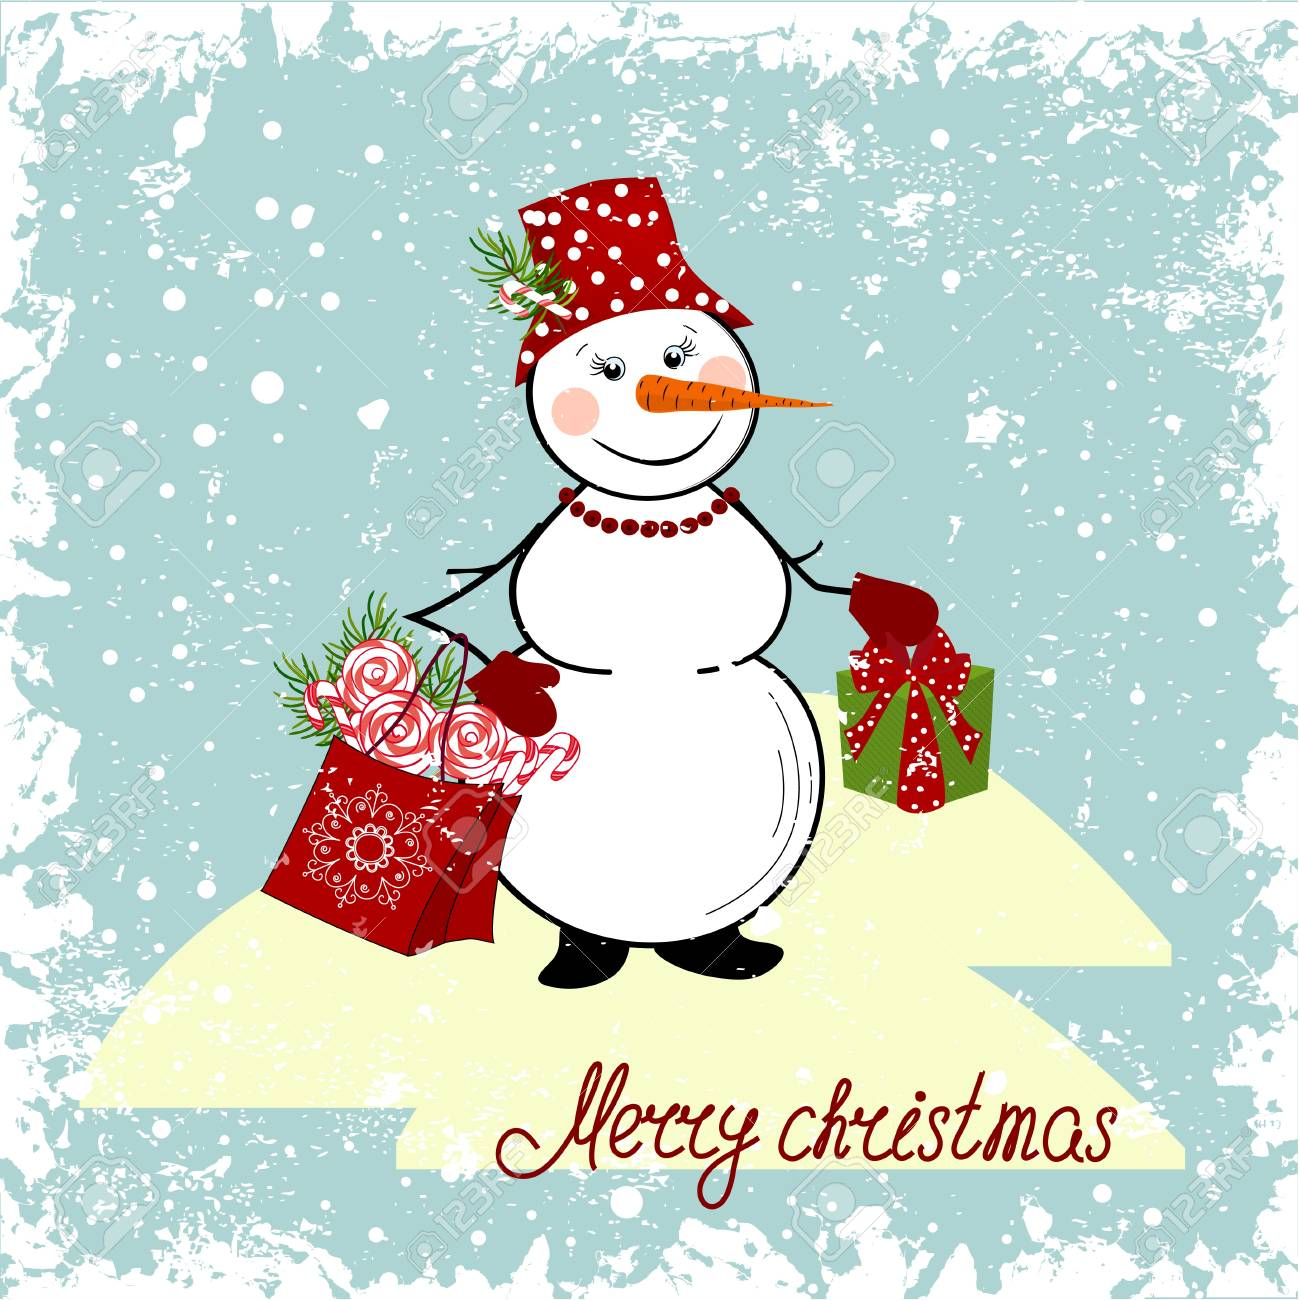 Christmas card with a snowman and gifts Stock Vector - 16560354